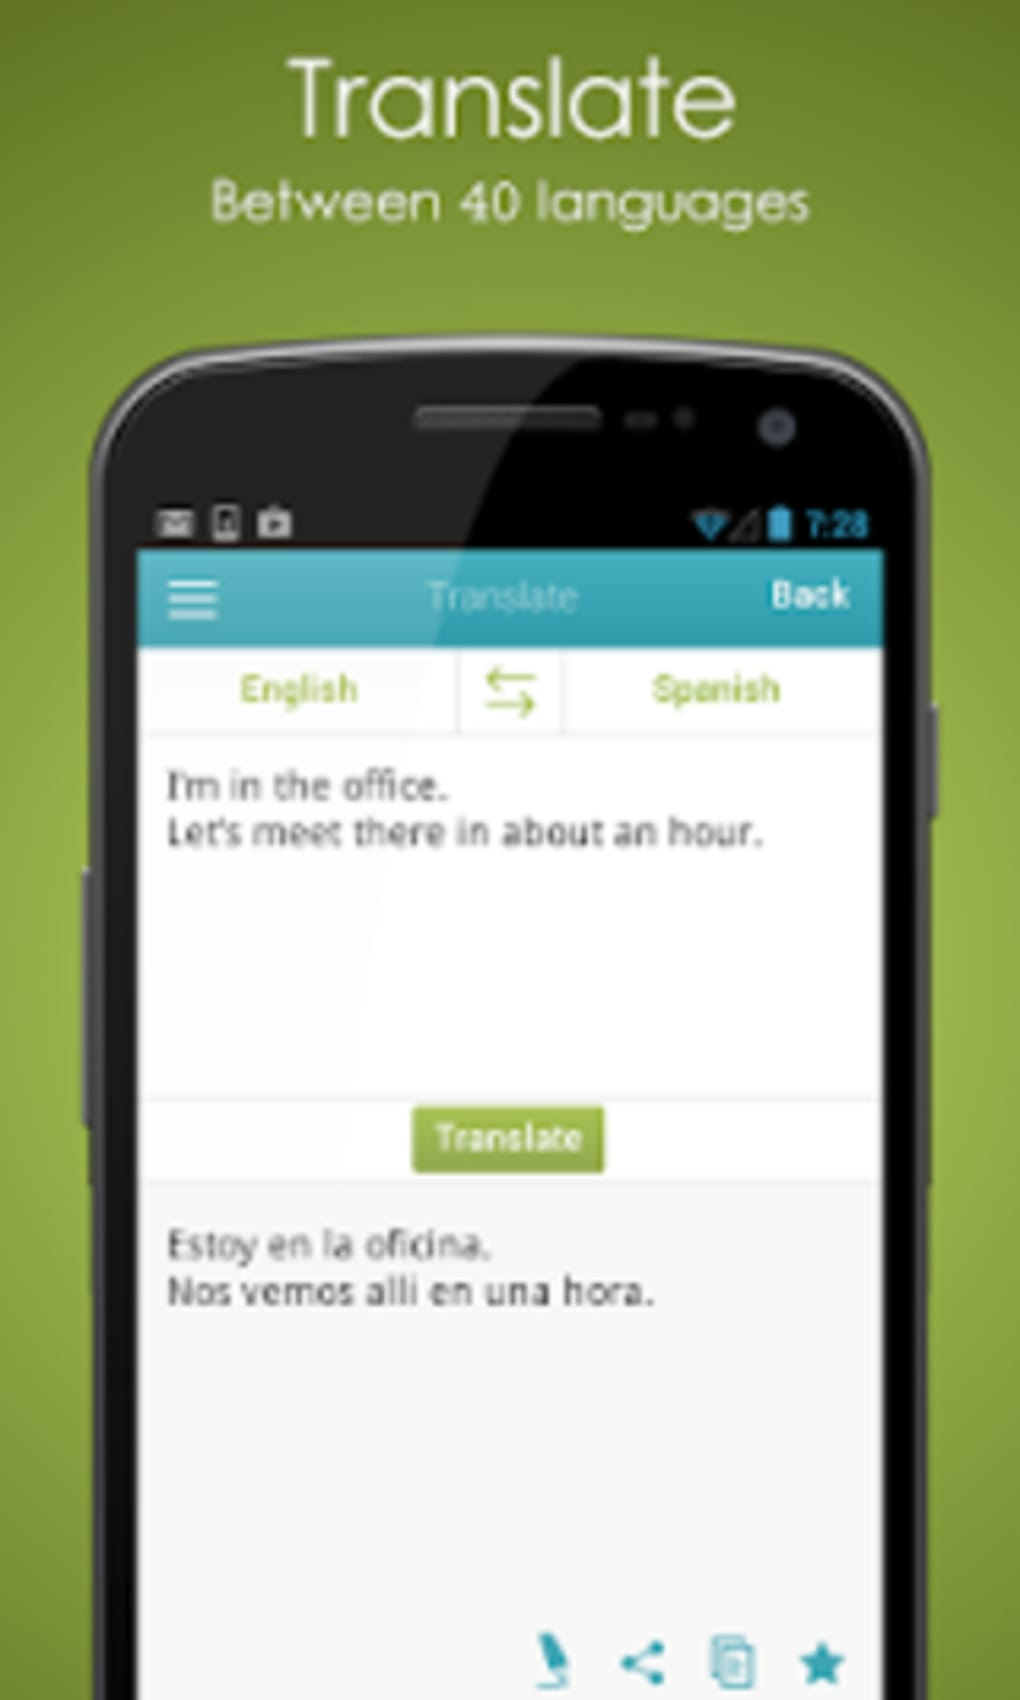 Grammar & Spelling Keyboard for Android - Download